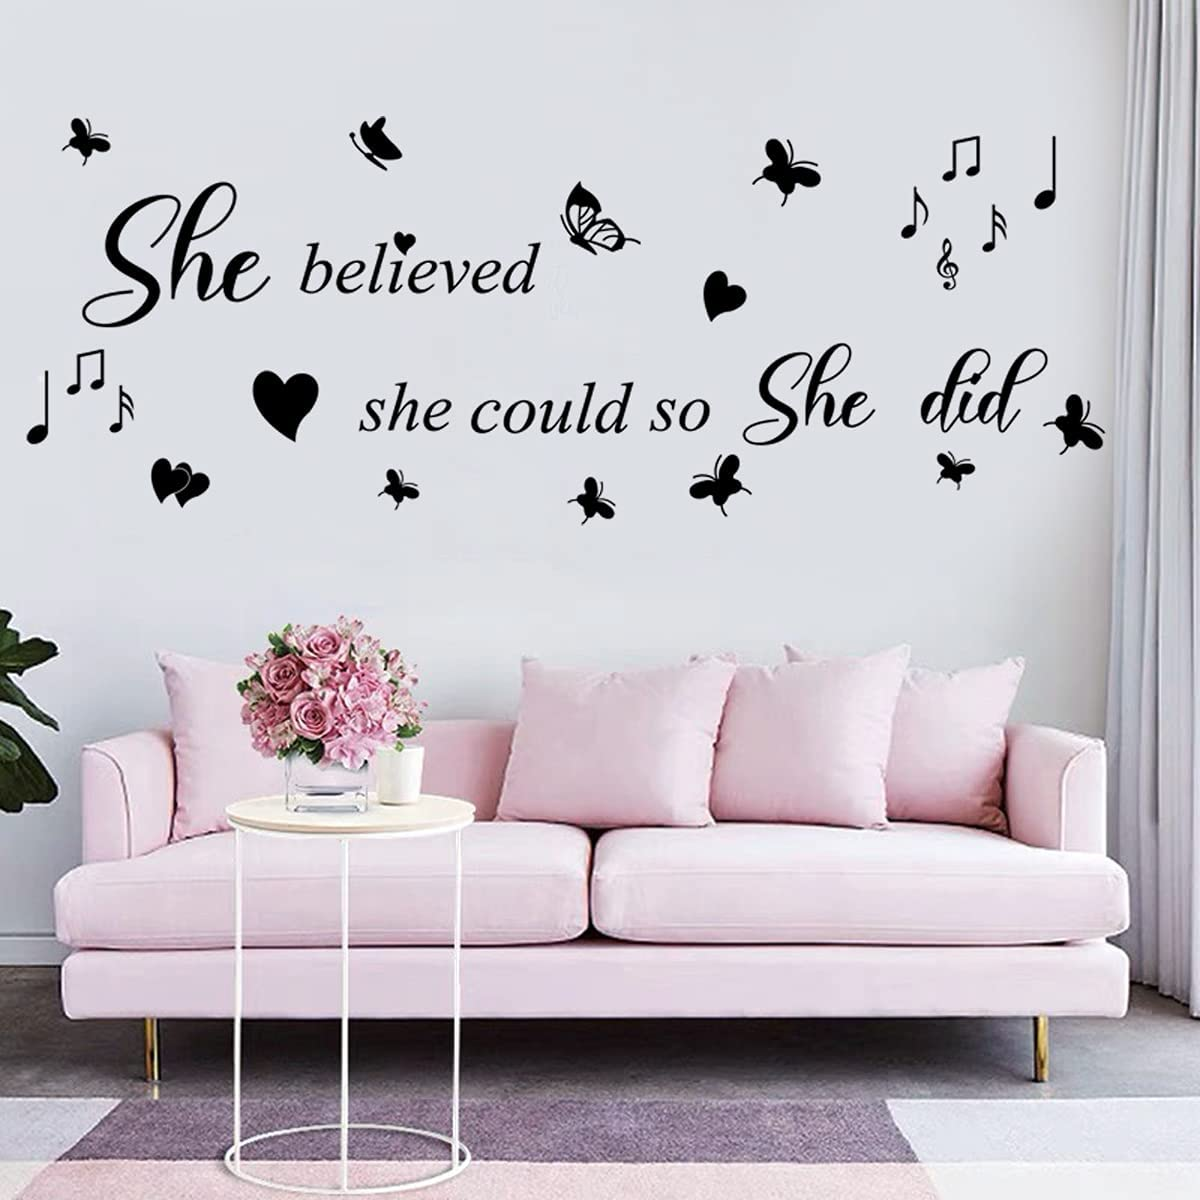 Black Inspirational Wall Stickers Wall Quotes She Believed She Could so She Did Vinyl Wall Decals Motivational Saying Wall Sticker for Living Room Girls Bedroom Women Room.